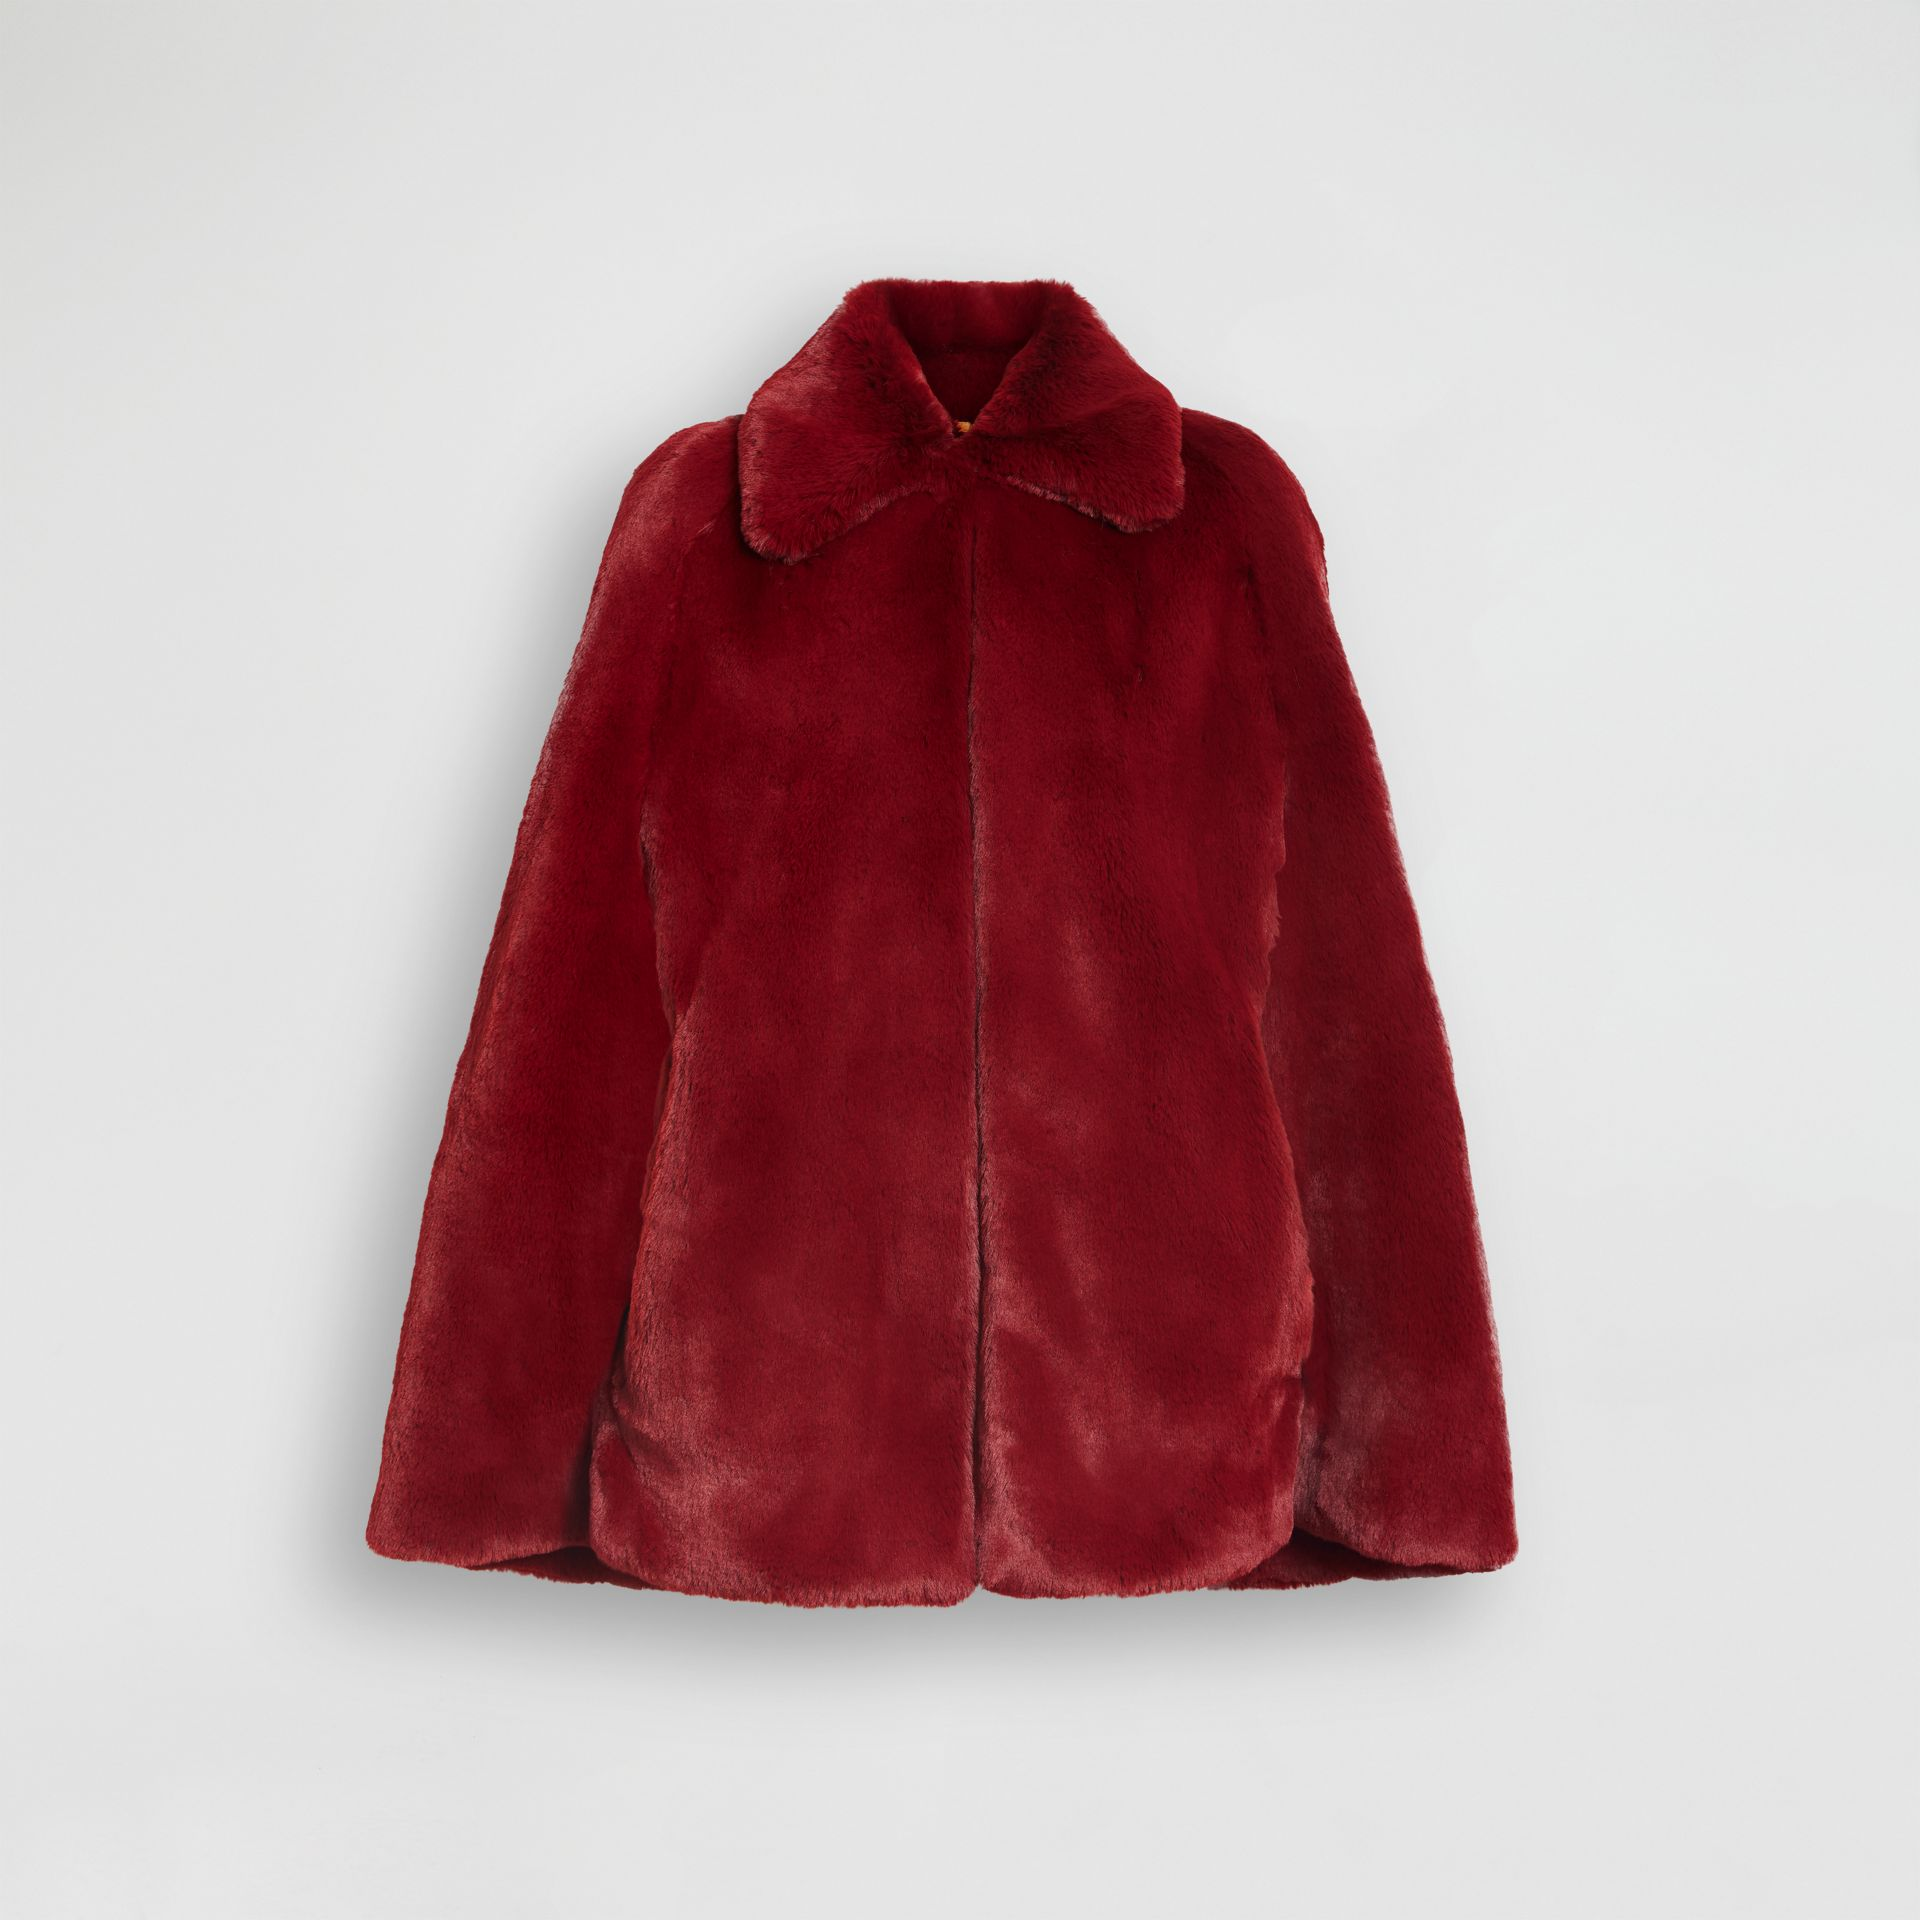 Faux Fur Cape in Burgundy - Women | Burberry United States - gallery image 3